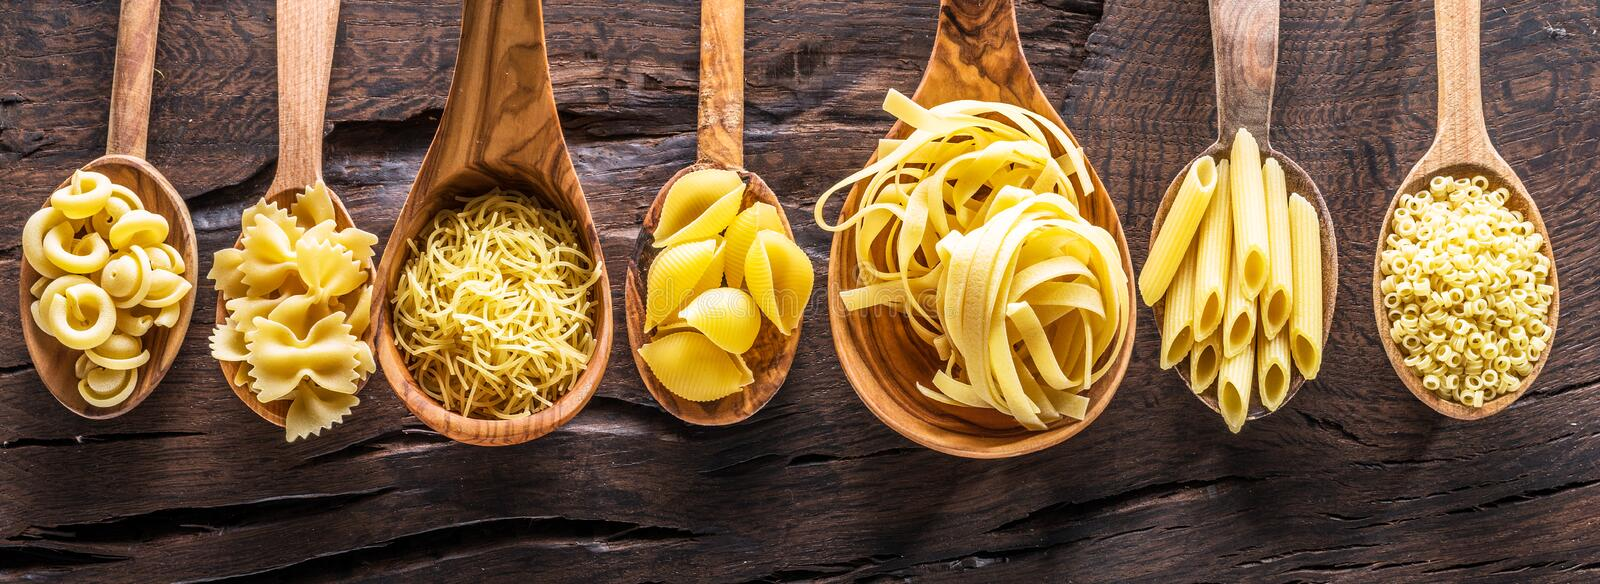 Different pasta types in wooden spoons on the table. Top view. royalty free stock photography